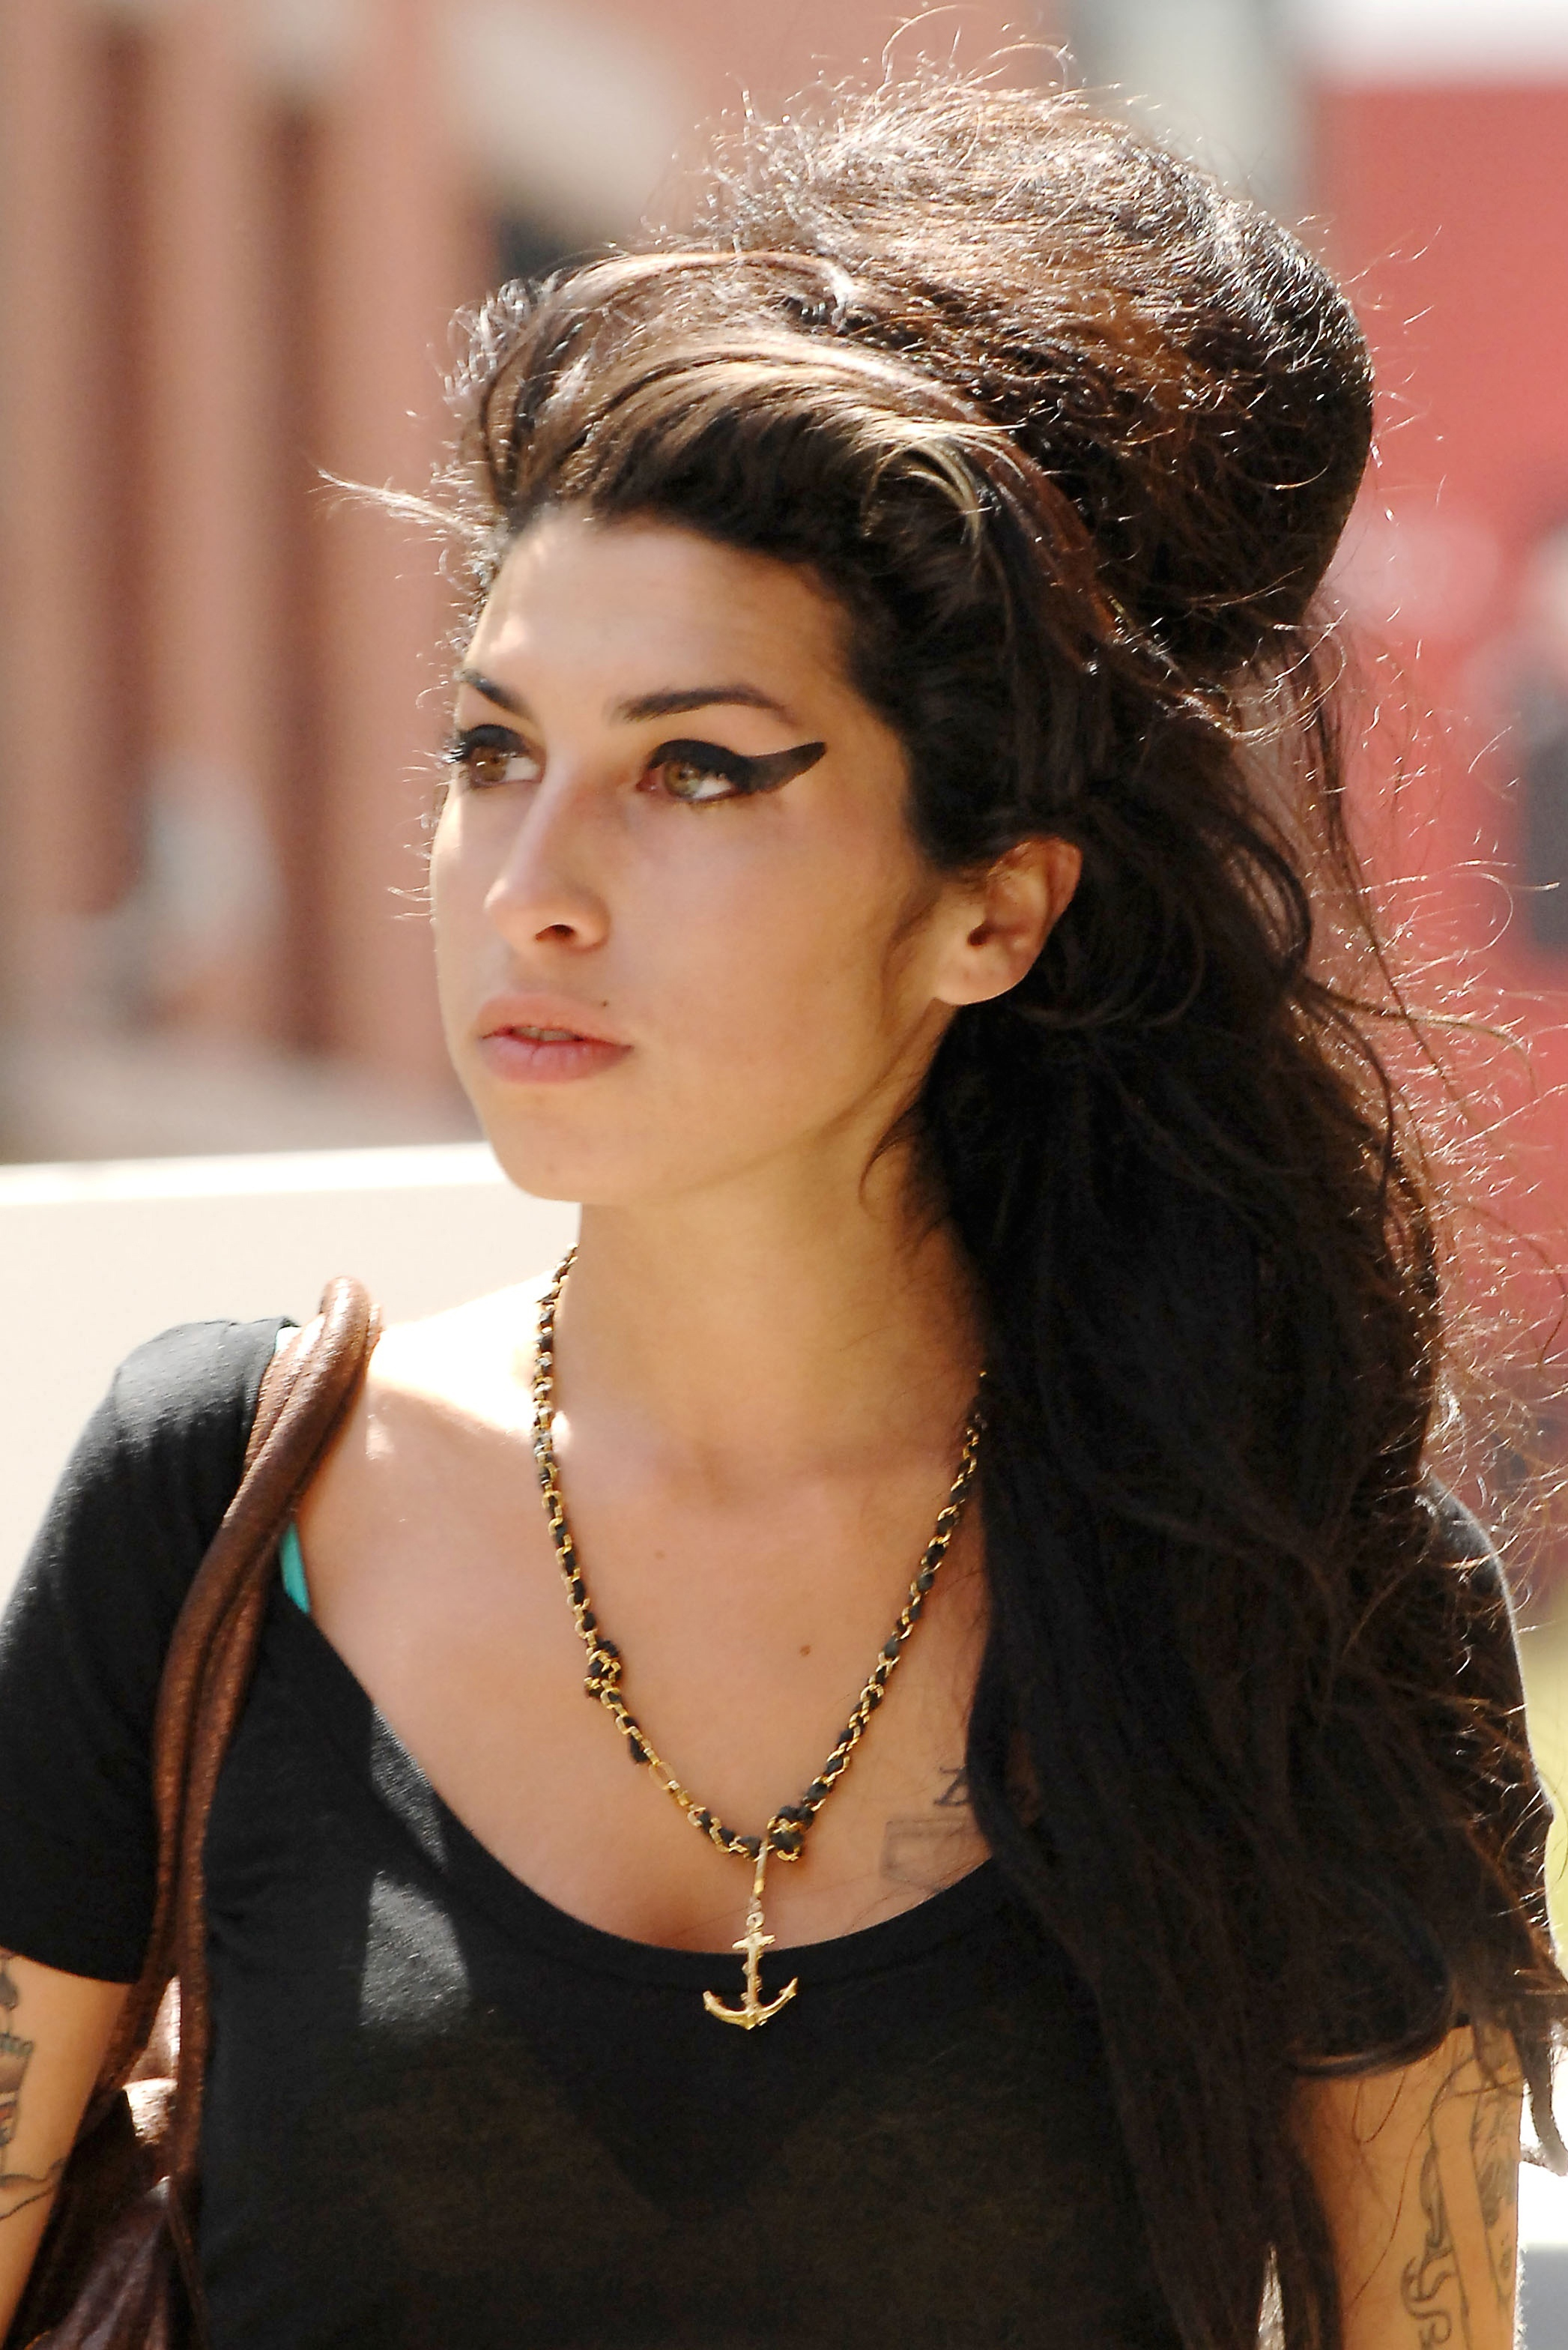 AMY WINEHOUSE – A TRAGEDY NO-ONE STOPPED | Maria Tedeschi Amy Winehouse